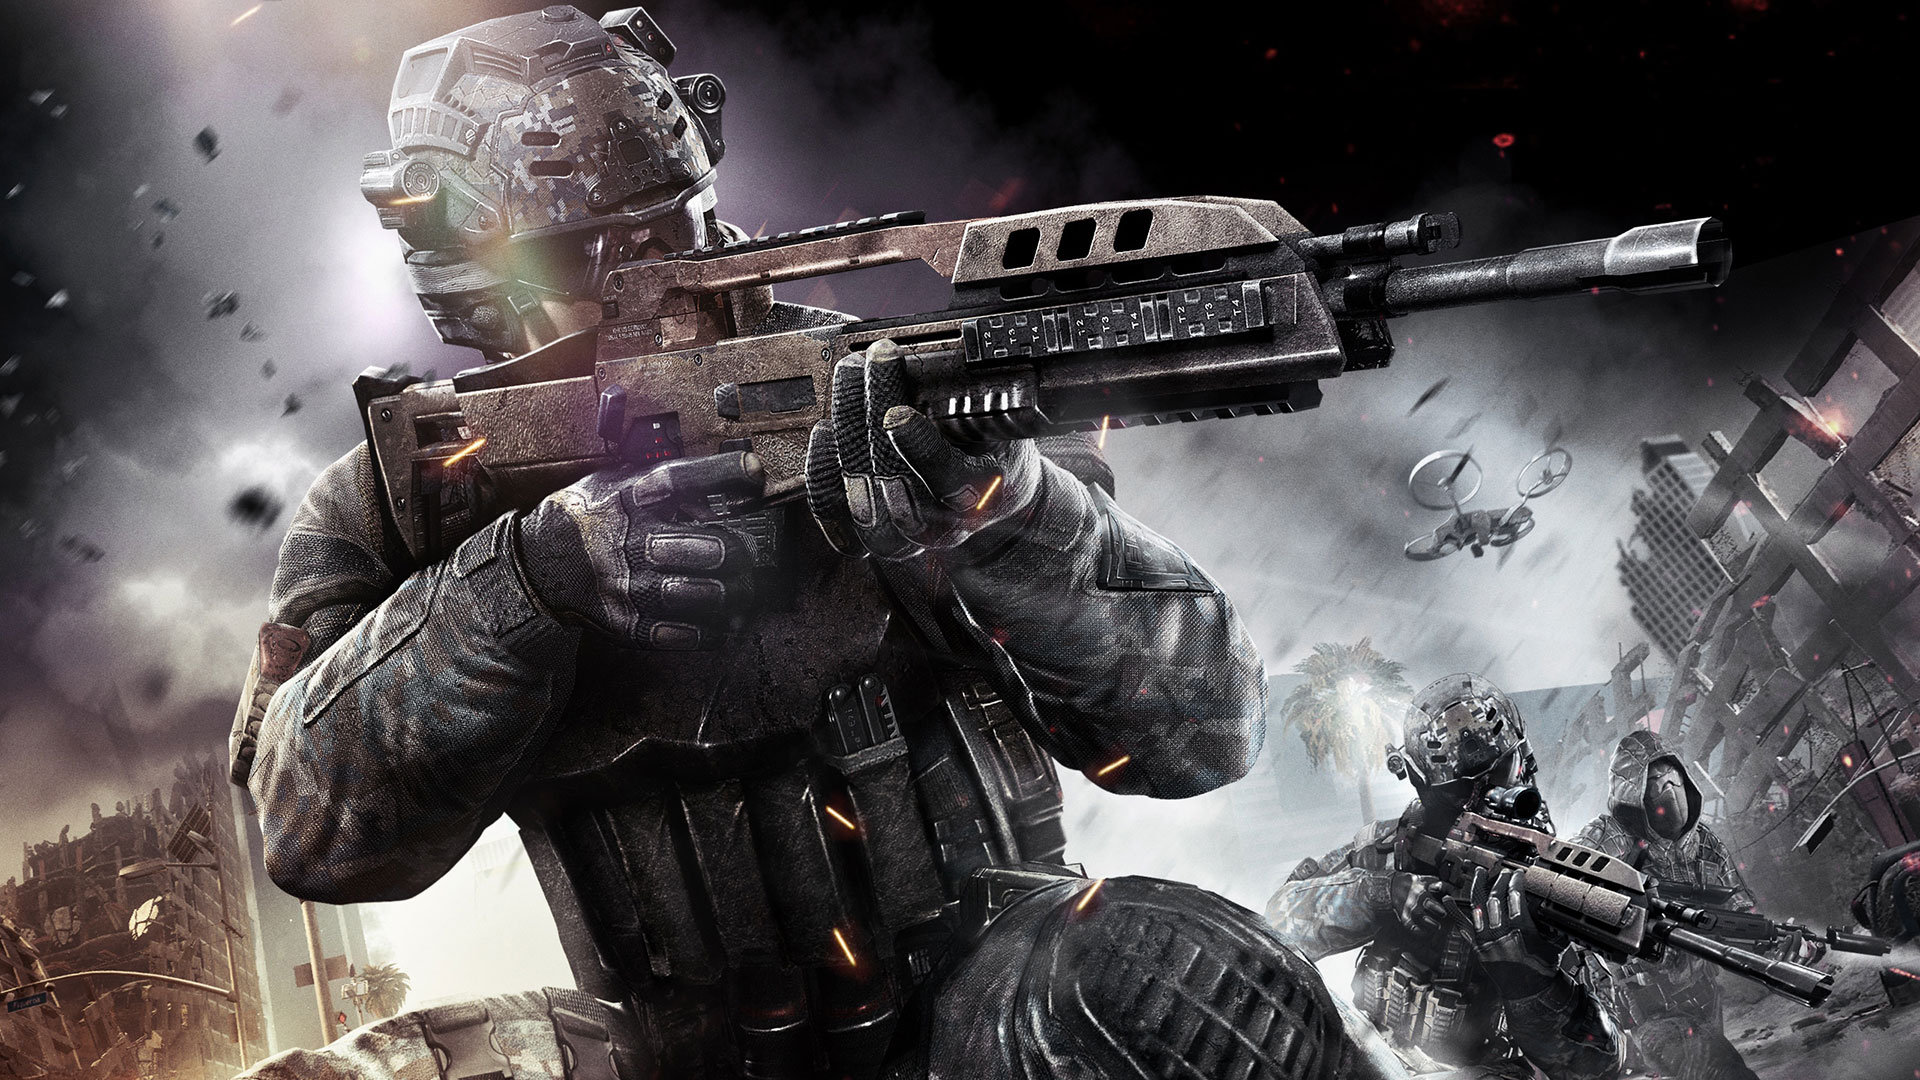 Call Of Duty Bo2 Wallpaper: Black Ops 2 Uprising DLC Video Previewed